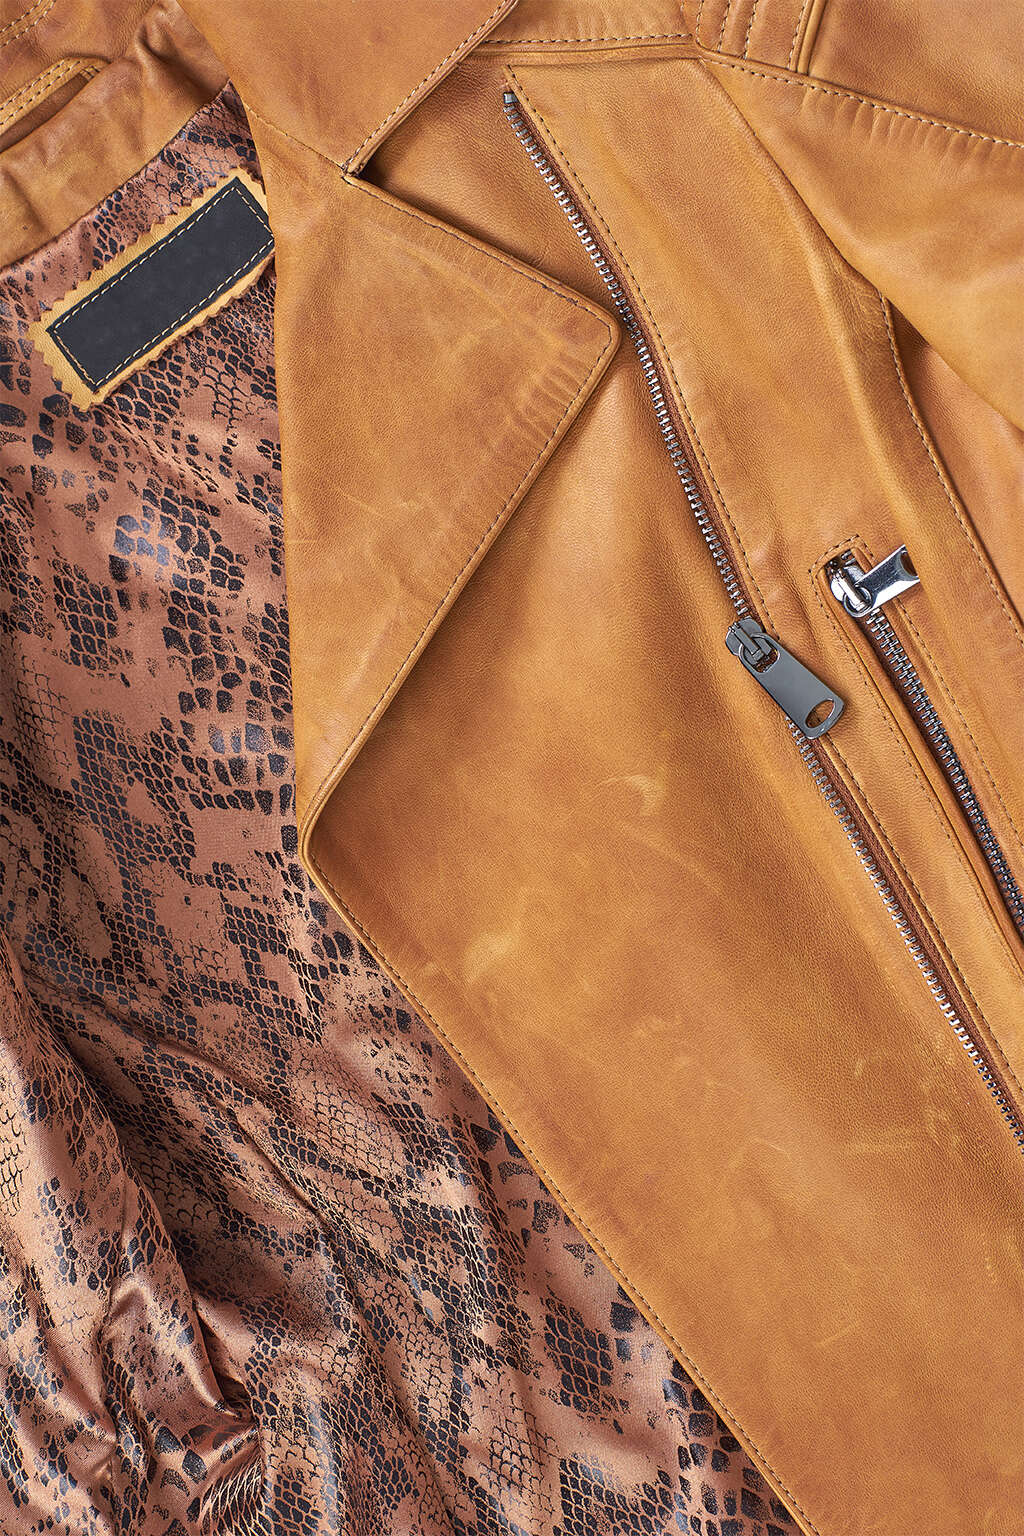 Zipper and Inner Lining Detail of Tawny Brown Classic Biker Leather Jacket